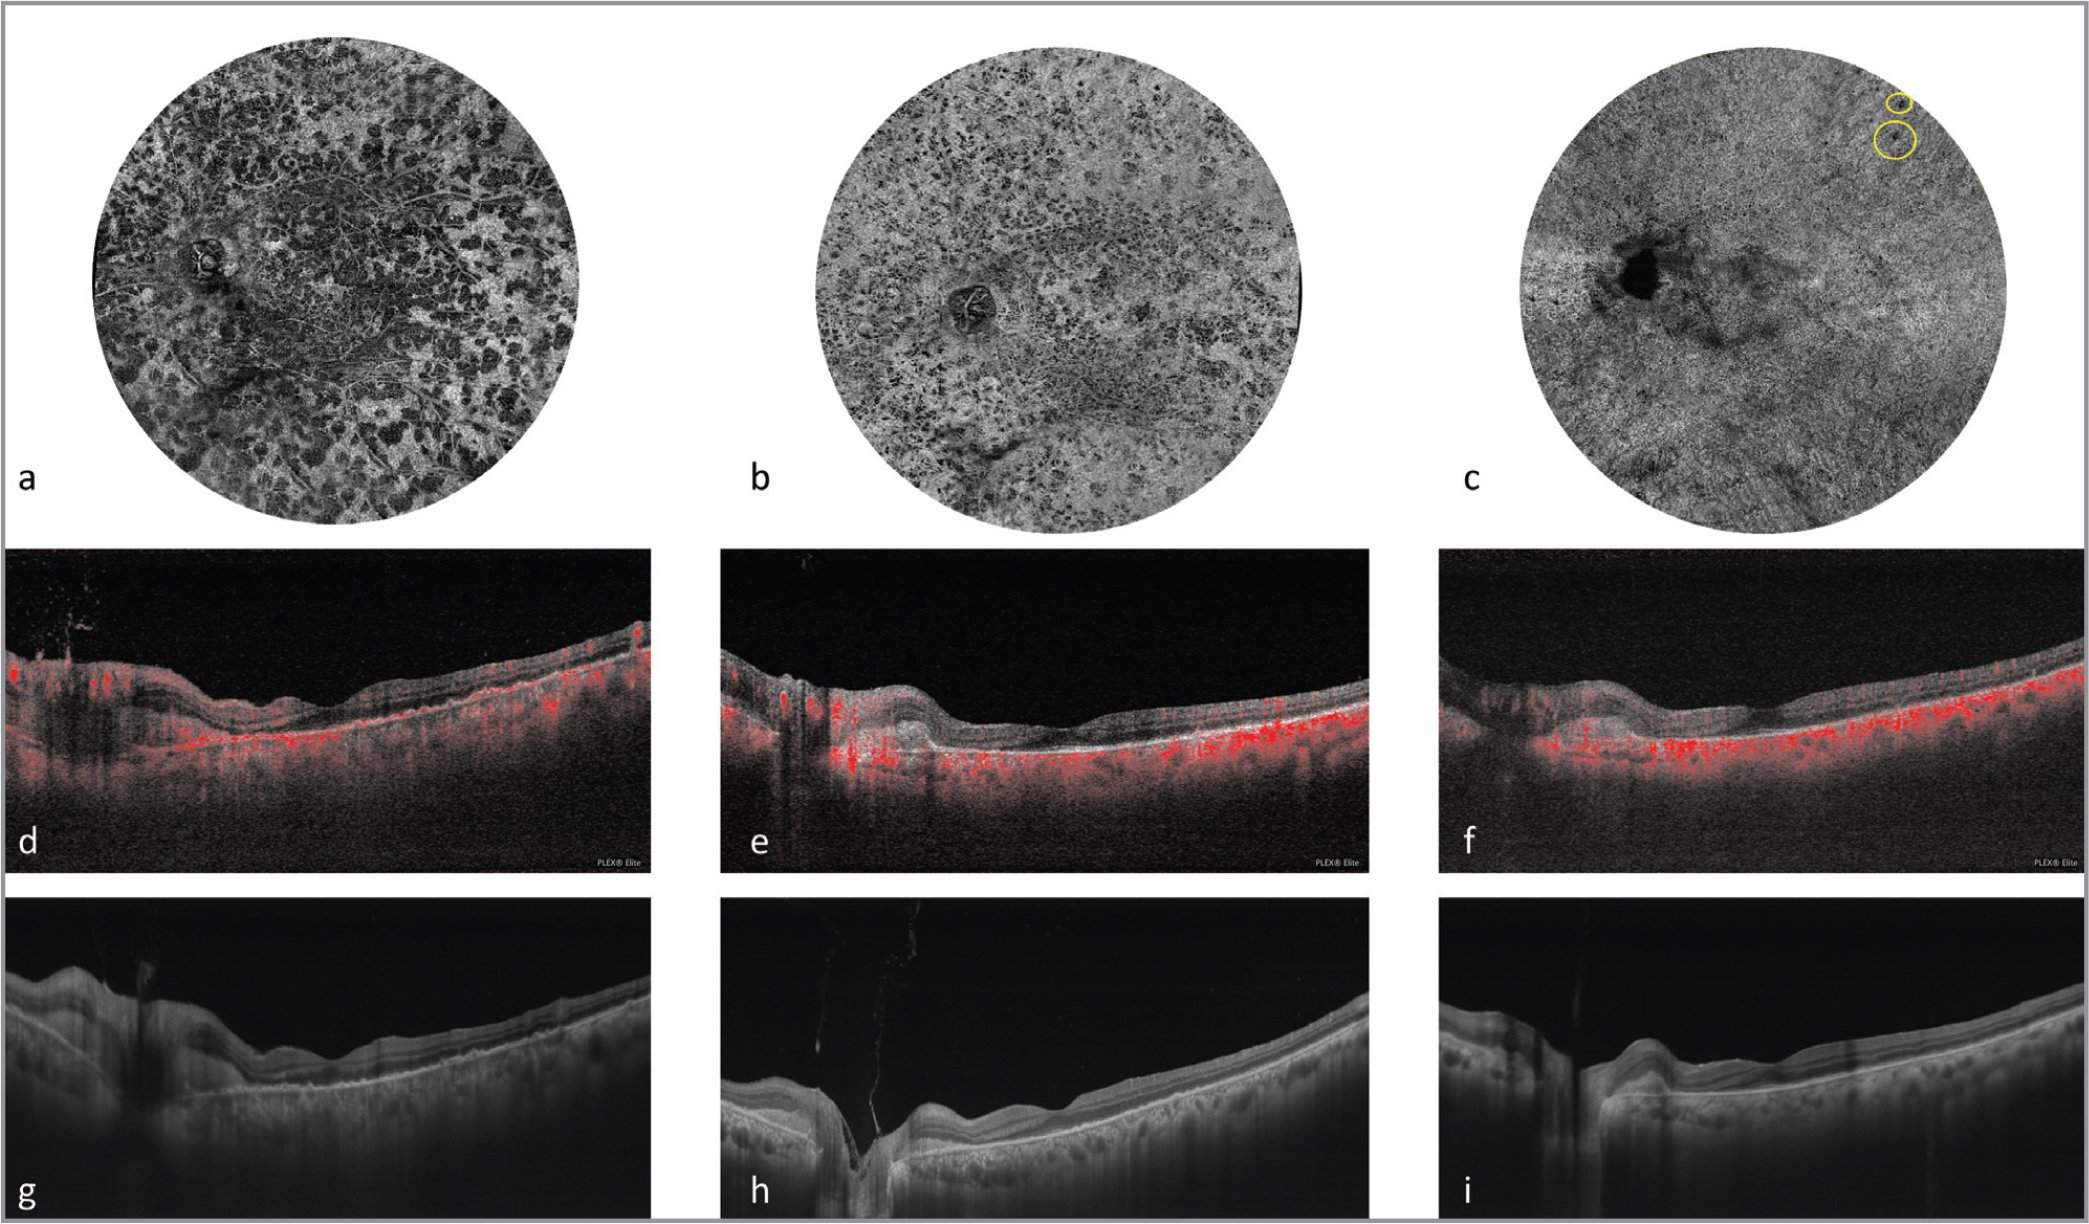 Serial swept-source optical coherence tomography (OCTA) montage scans of multiple 12 mm × 12 mm scans at the level of the choriocapillaries at presentation and follow-up (top row). There are multiple dark foci of flow voids of different shapes and sizes throughout the posterior pole consistent with likely choriocapillaris hypoperfusion at presentation. (a) At 3 months' follow-up, with initiation of systemic immunosuppression, there is a significant reduction in the size and number of these spots (b). At 6 months' follow-up, there is near complete resolution, with only a few flow voids still visible (yellow ovals, c). The optic nerve is darker in (c) due to a shadow artifact from overlying vitreous opacity. Structural OCT scans with flow overlay (middle row) show significant reduction of flow (red dots) at the level of the choriocapillaris and the choroid at presentation (d), with progressive restoration of flow at 3 months (e) and further at 6 months (f). Enhanced depth 16-mm horizontal OCT scans (bottom row) showing a very thickened choroid along with peripapillary subretinal hyperreflective material and multiple retinal pigment epithelium (RPE) drusenoid-like elevations in the macula at presentation (g). At 3 months, there is reduction in the peripapillary subretinal hyperreflective material and choroidal thickness along with partial restoration of the external limiting membrane and ellipsoid zone and reduction in the RPE drusenoid like elevations (h). By 6 months, there is near complete resolution of the RPE drusenoid-like elevations (i).